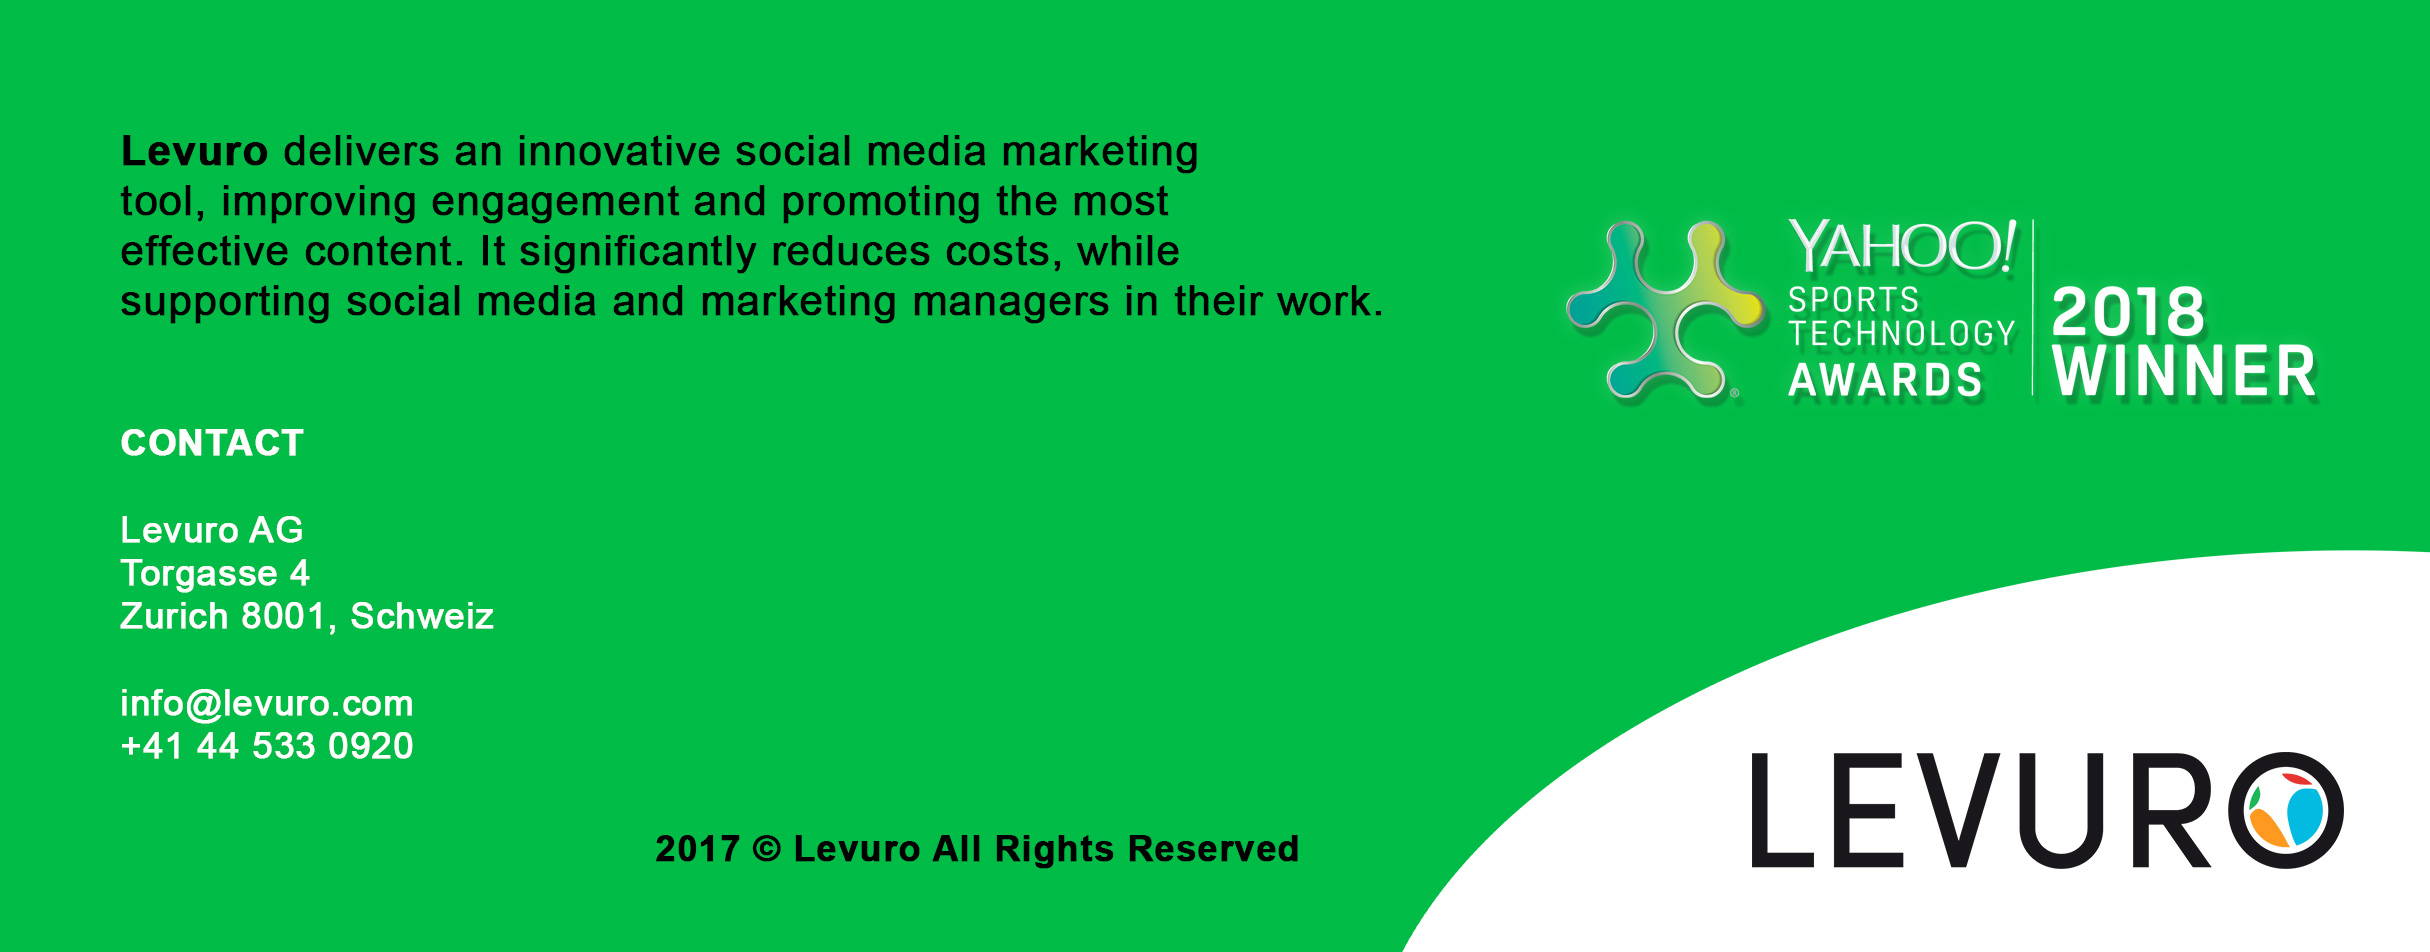 LEVURO ENGAGE - SOCIAL MEDIA MARKETING MANAGEMENT TOOL